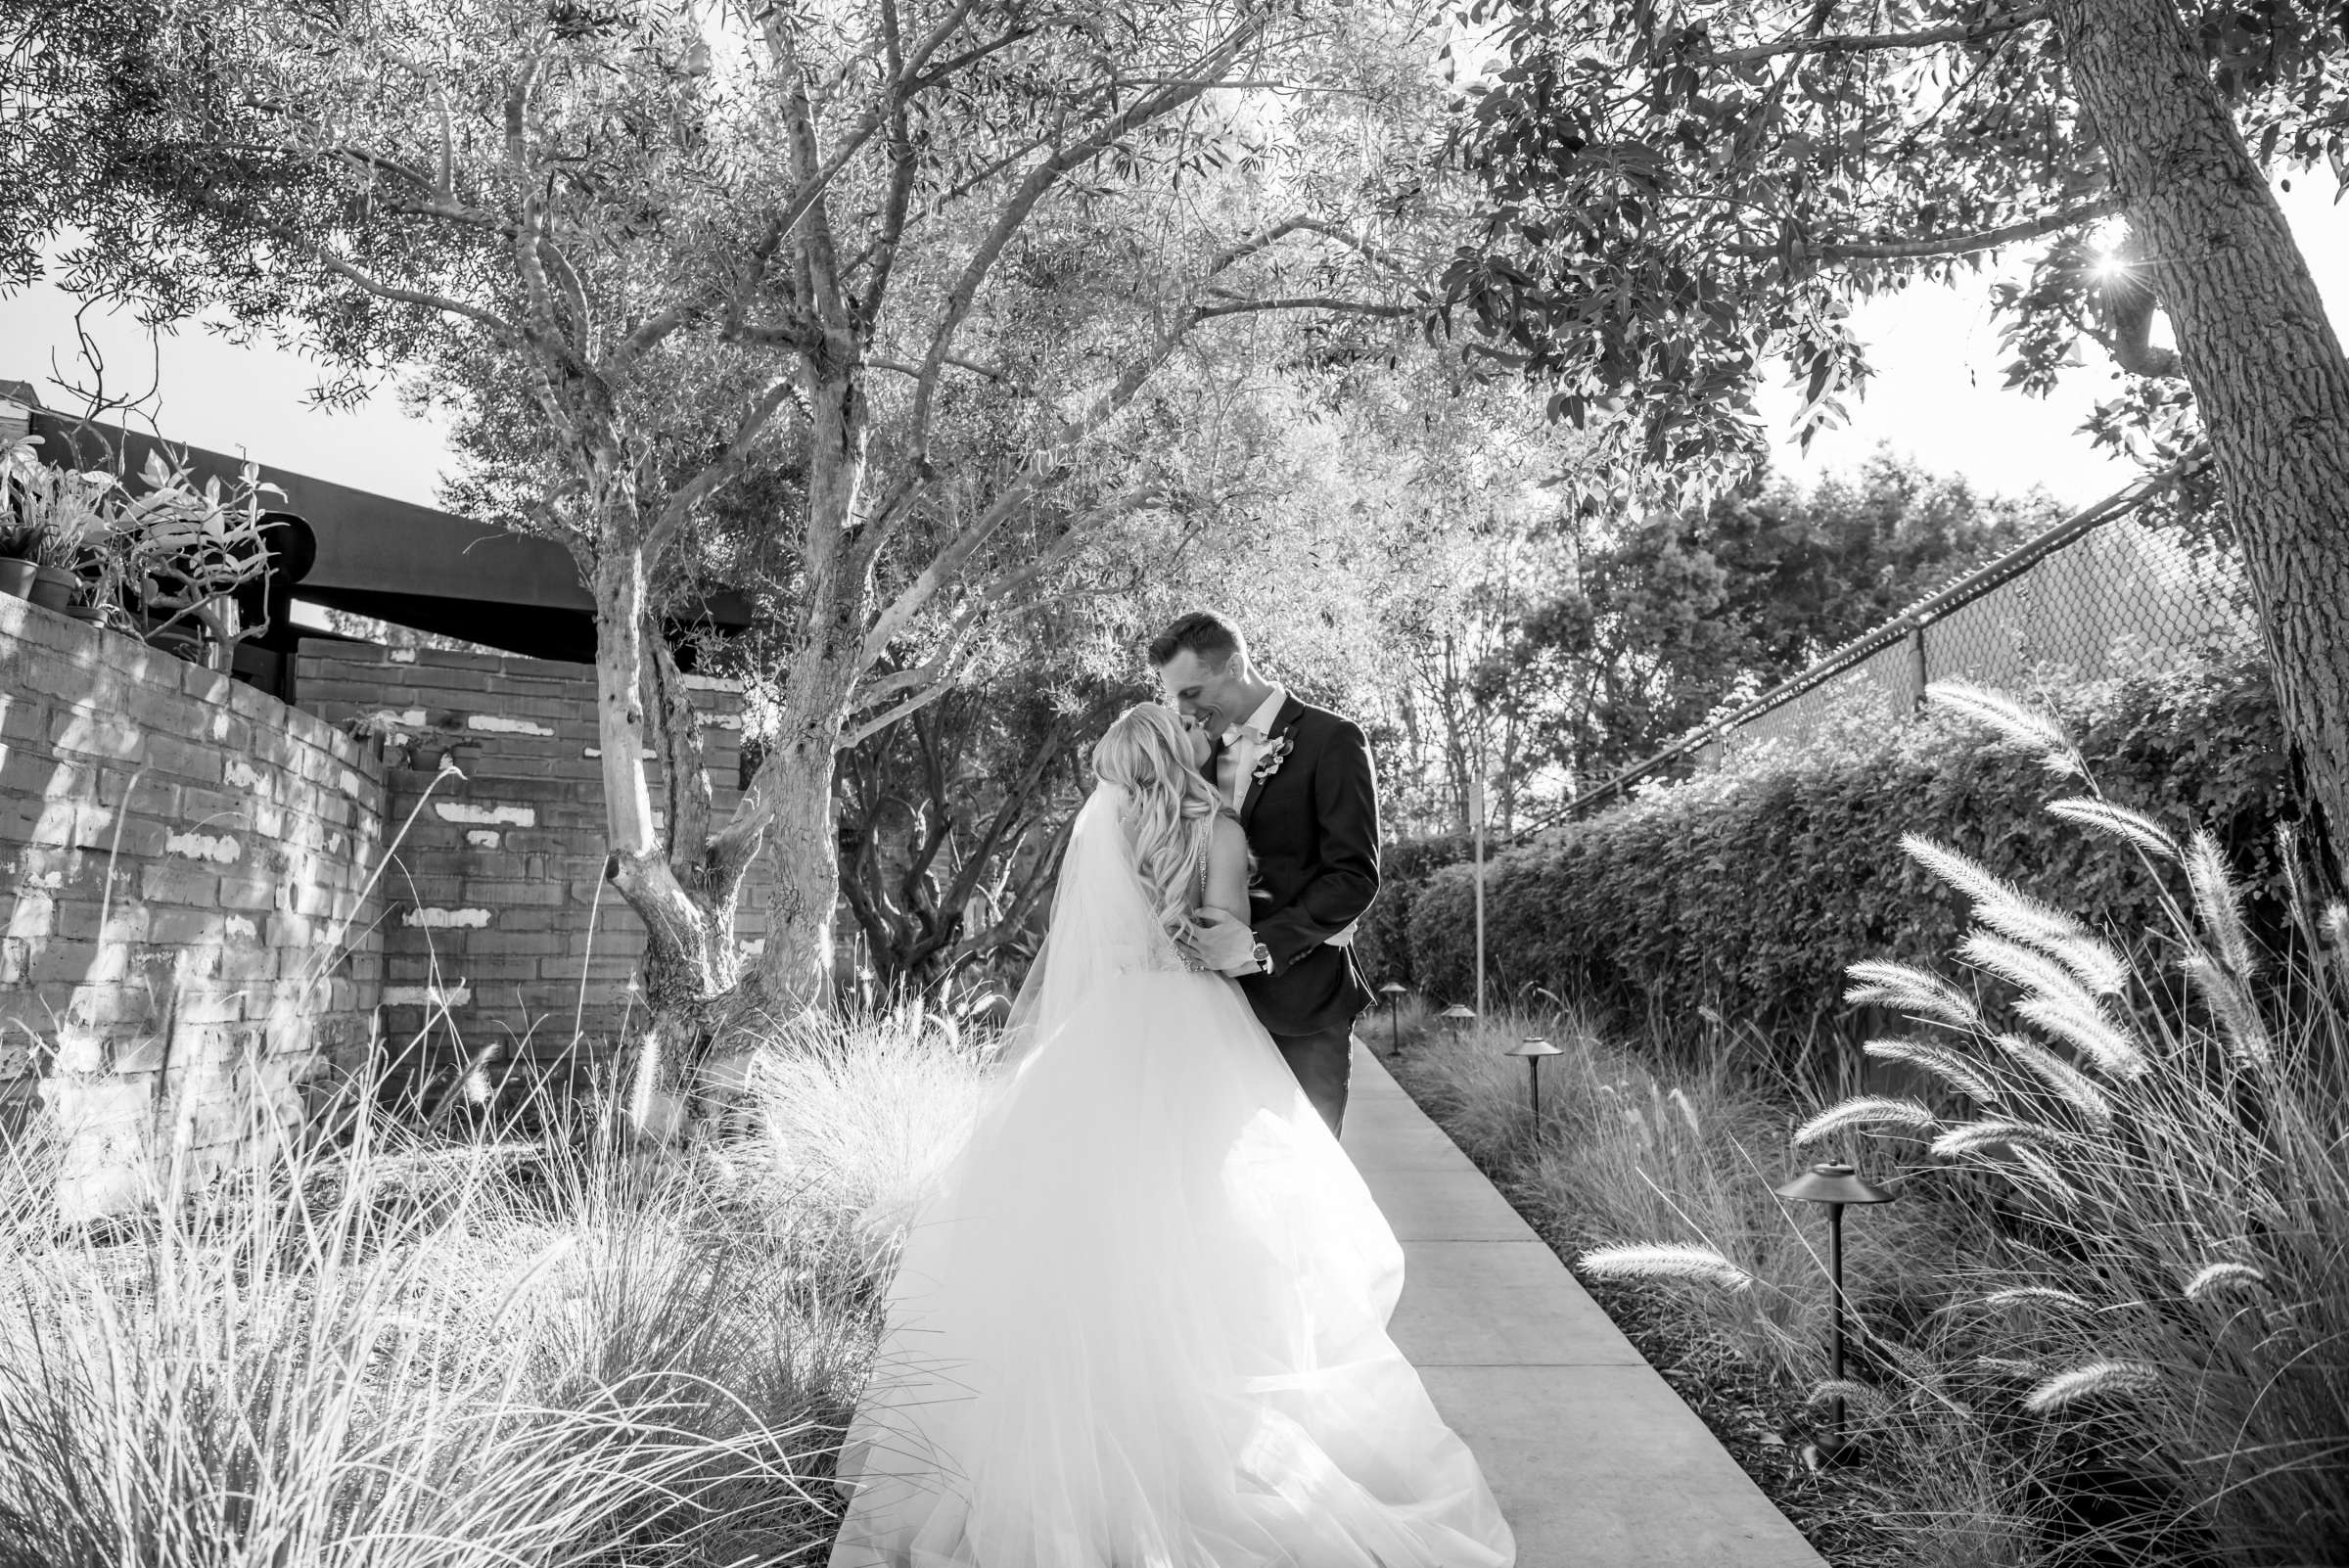 Estancia Wedding coordinated by Details Darling, Kaileigh and Richard Wedding Photo #84 by True Photography